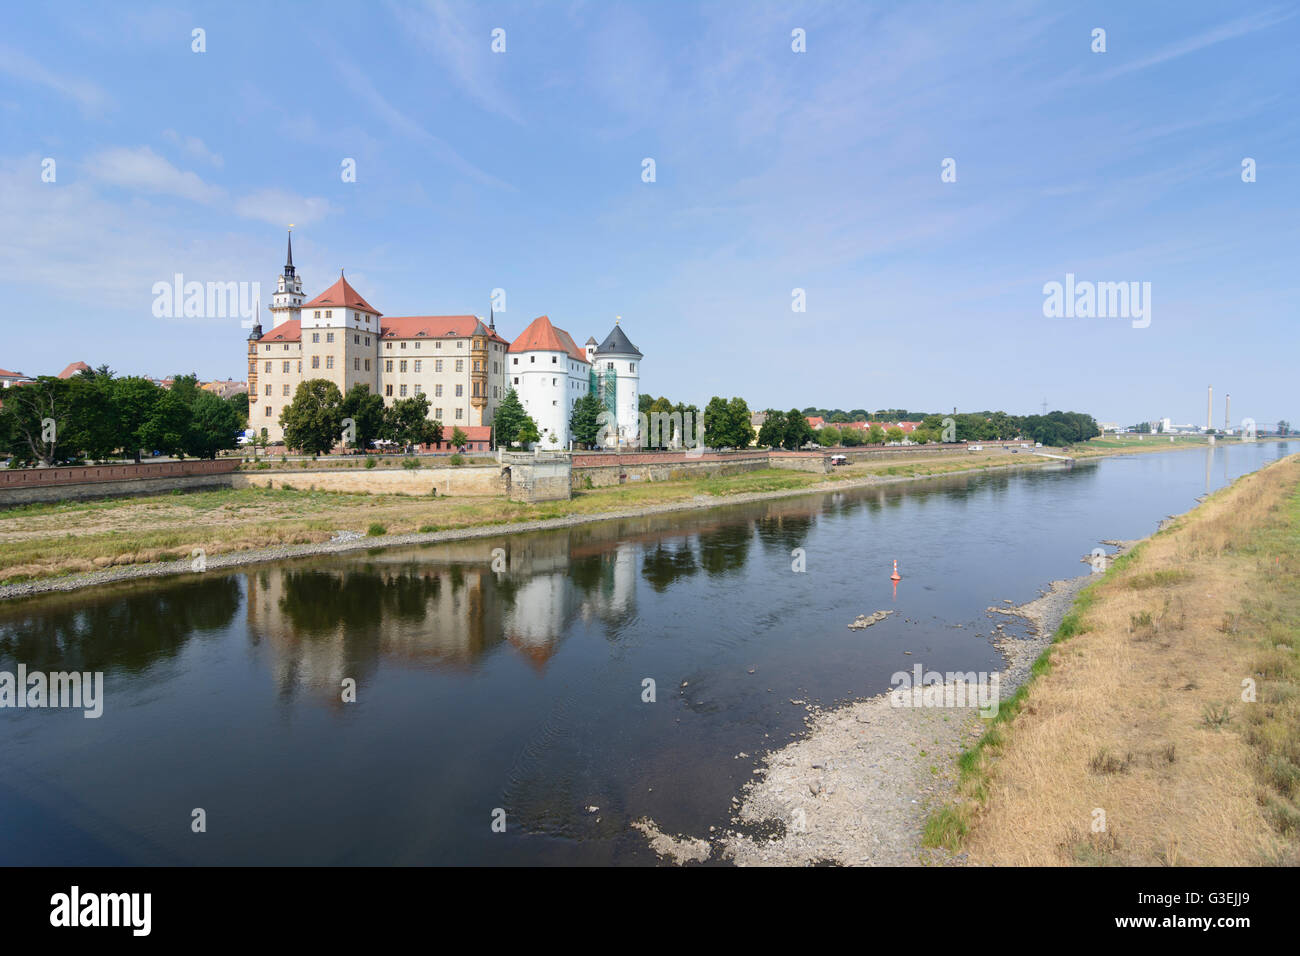 Hartenfels Castle on the Elbe, Germany, Sachsen, Saxony, , Torgau Stock Photo